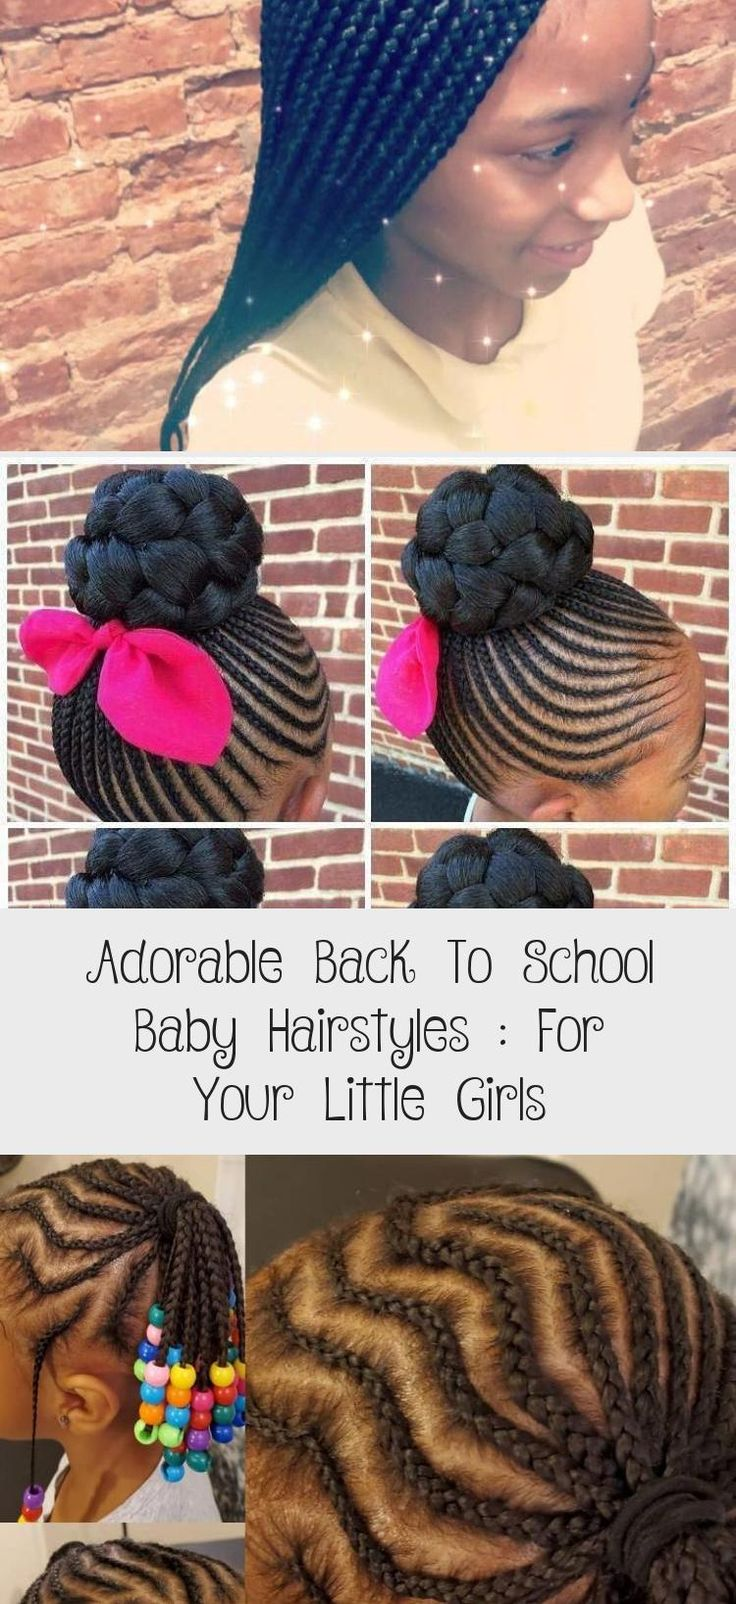 Adorable Back To School Baby Hairstyles : For Your Little Girls #Baldbabyhairstyles #babyhairstylesForParty #babyhairstylesWithBeads #babyhairstylesIndian #Littlebabyhairstyles